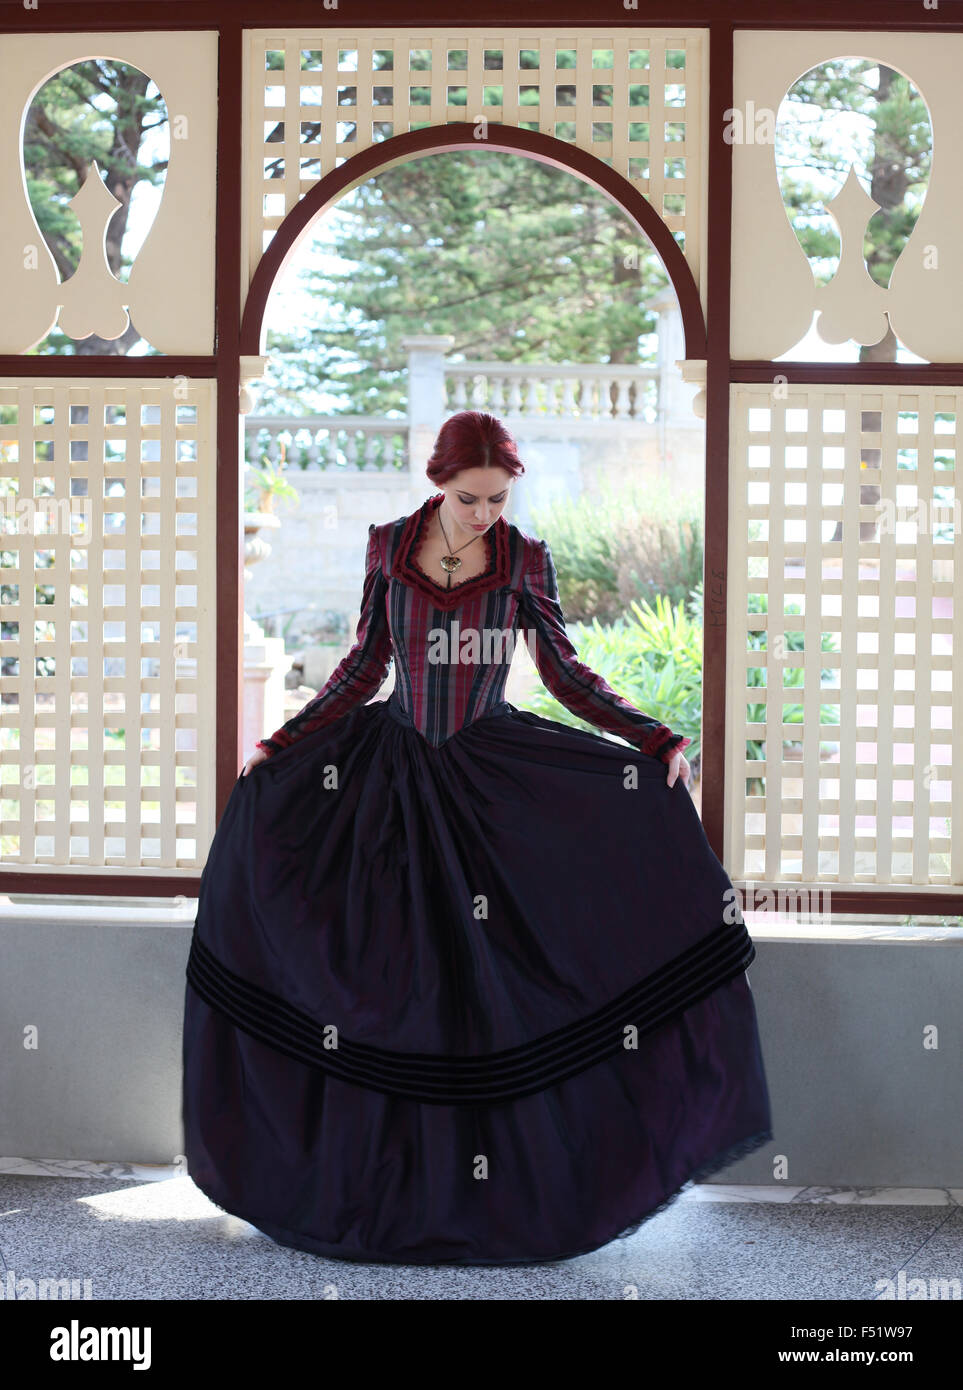 Long Gothic Gown Stock Photos & Long Gothic Gown Stock Images - Alamy